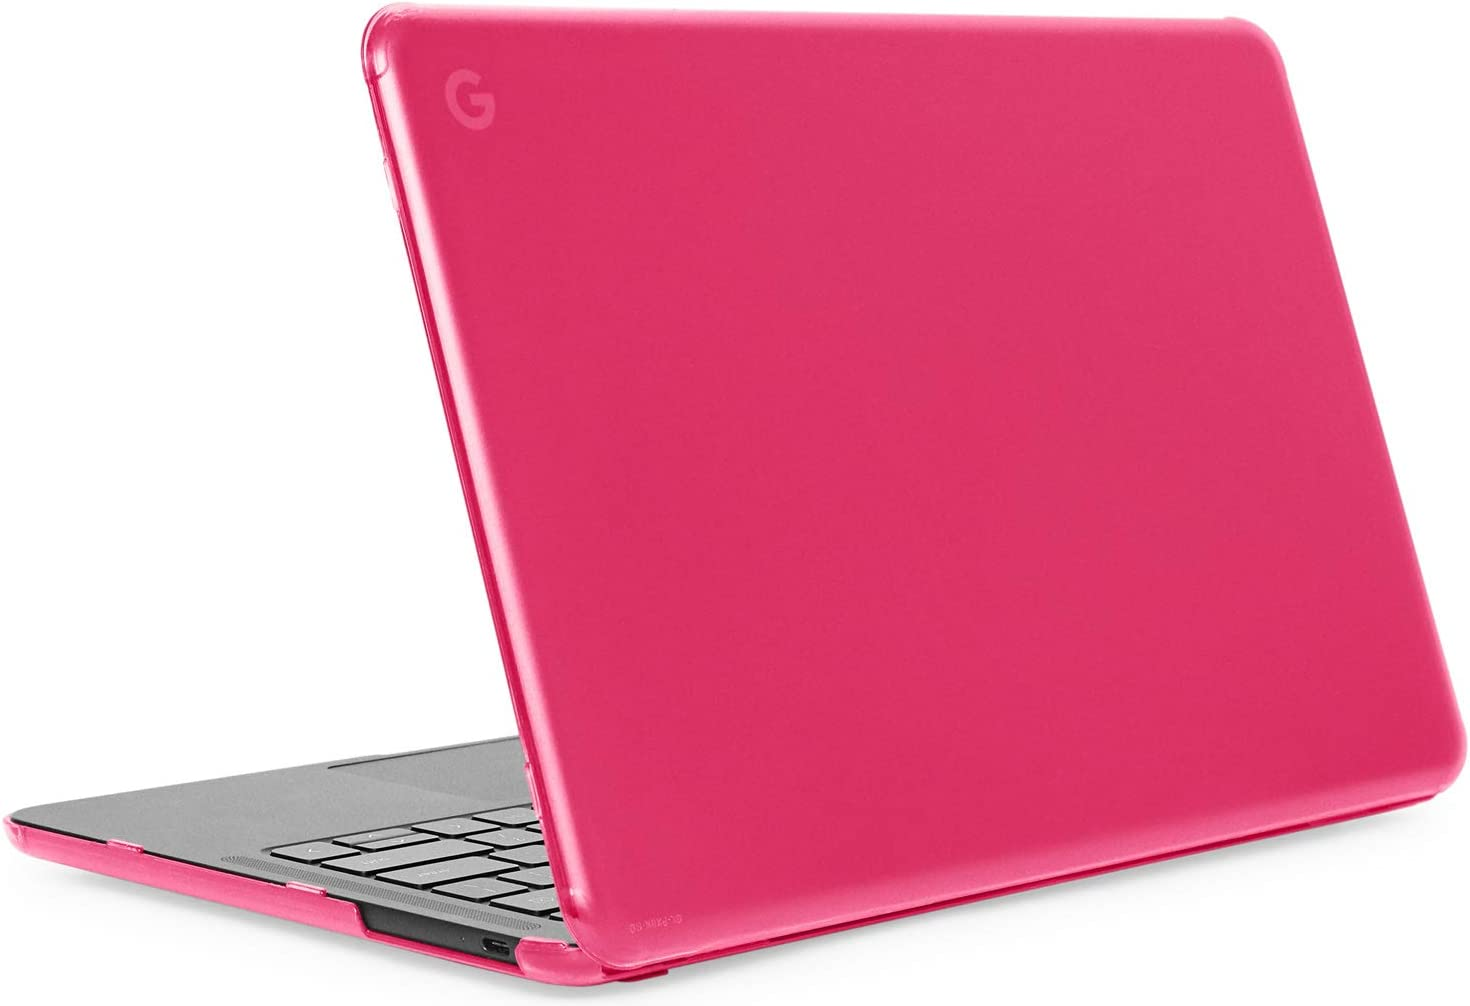 "mCover Hard Shell Case for Late-2019 13.3"" Google Pixelbook Go Chromebook Laptop Computers (NOT Compatible Older Model Released Before 2019) laptops (PixelbookGo Pink)"